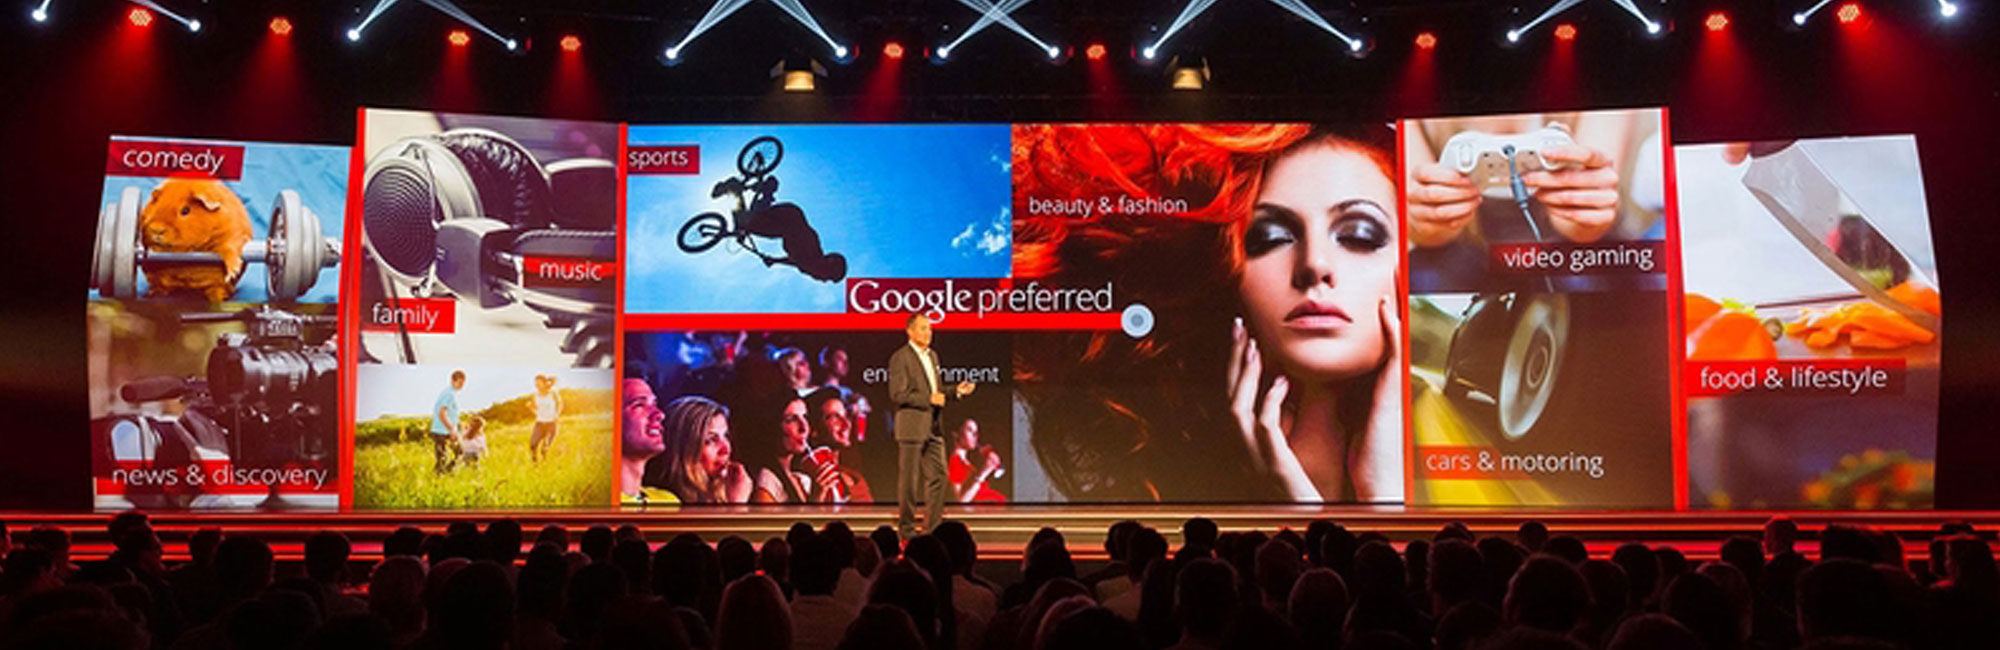 14.-Google-YouTube-Brandcast1